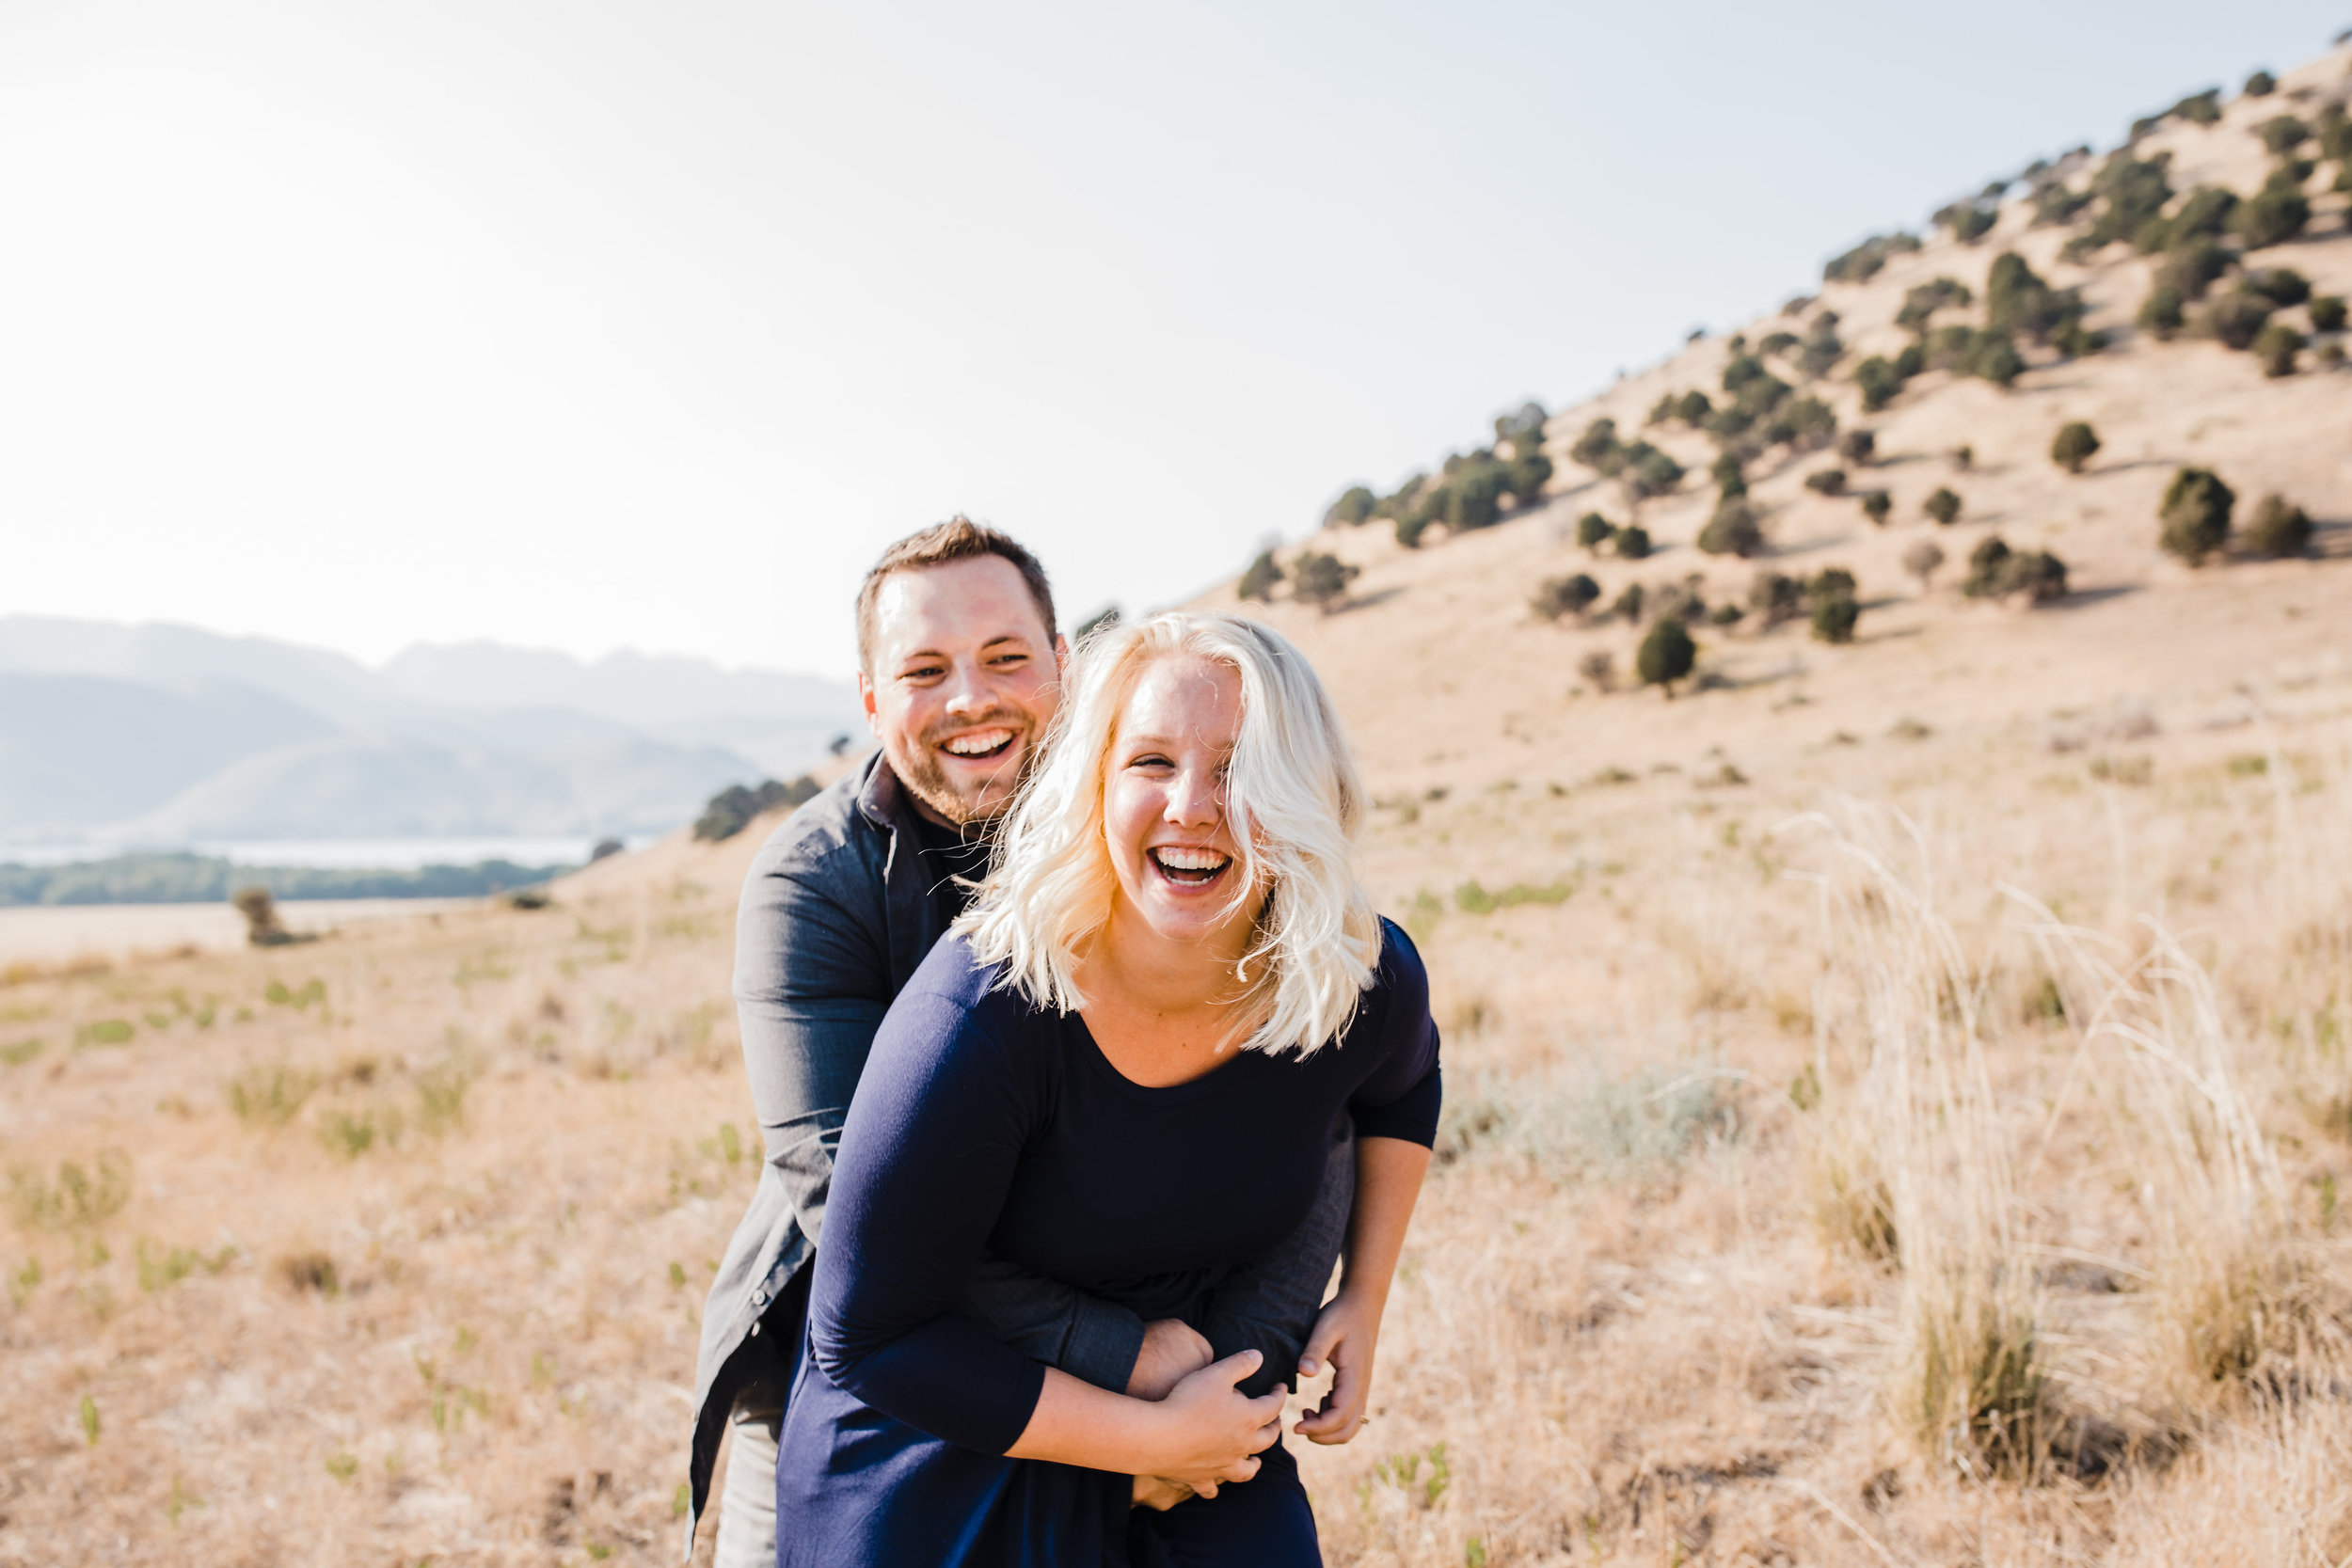 brigham city professional engagement photographer mountain backdrop laughing hugging running